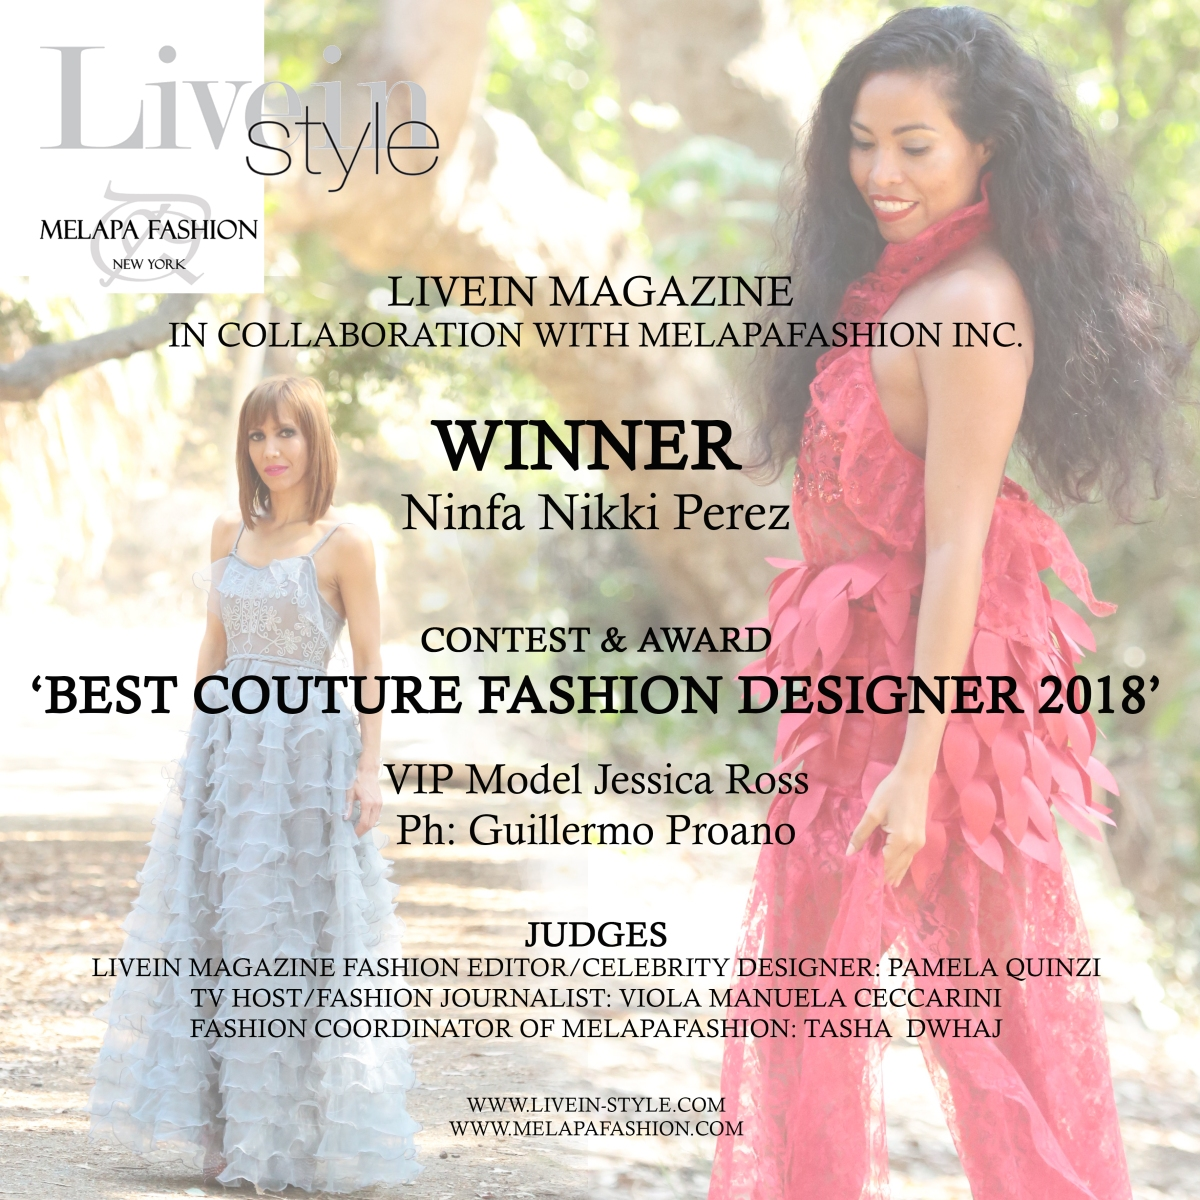 Winner Fashion Journalist Of The Year: Ninfa Nikki Perez Won The Contest And Award 'Best Couture